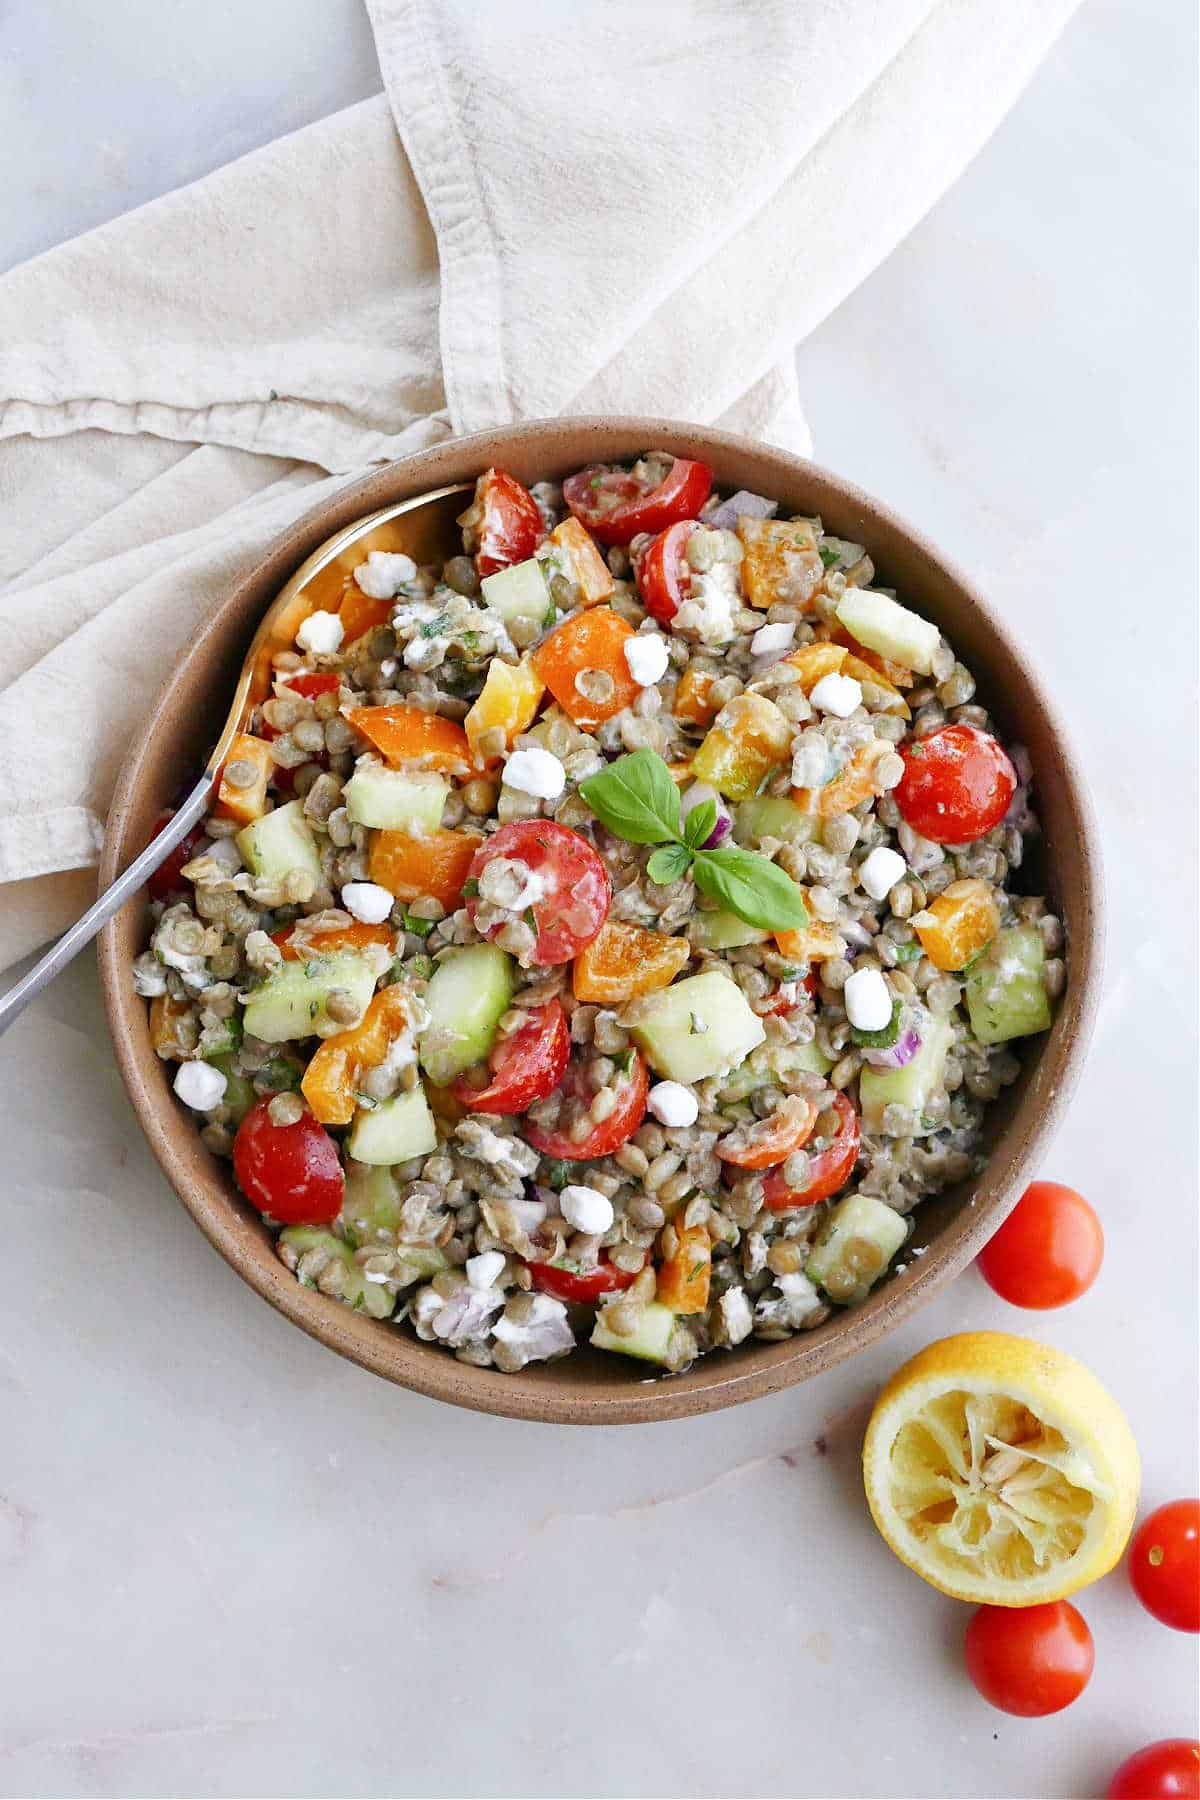 Greek lentil salad in a serving bowl next to tomatoes, lemon, and a napkin